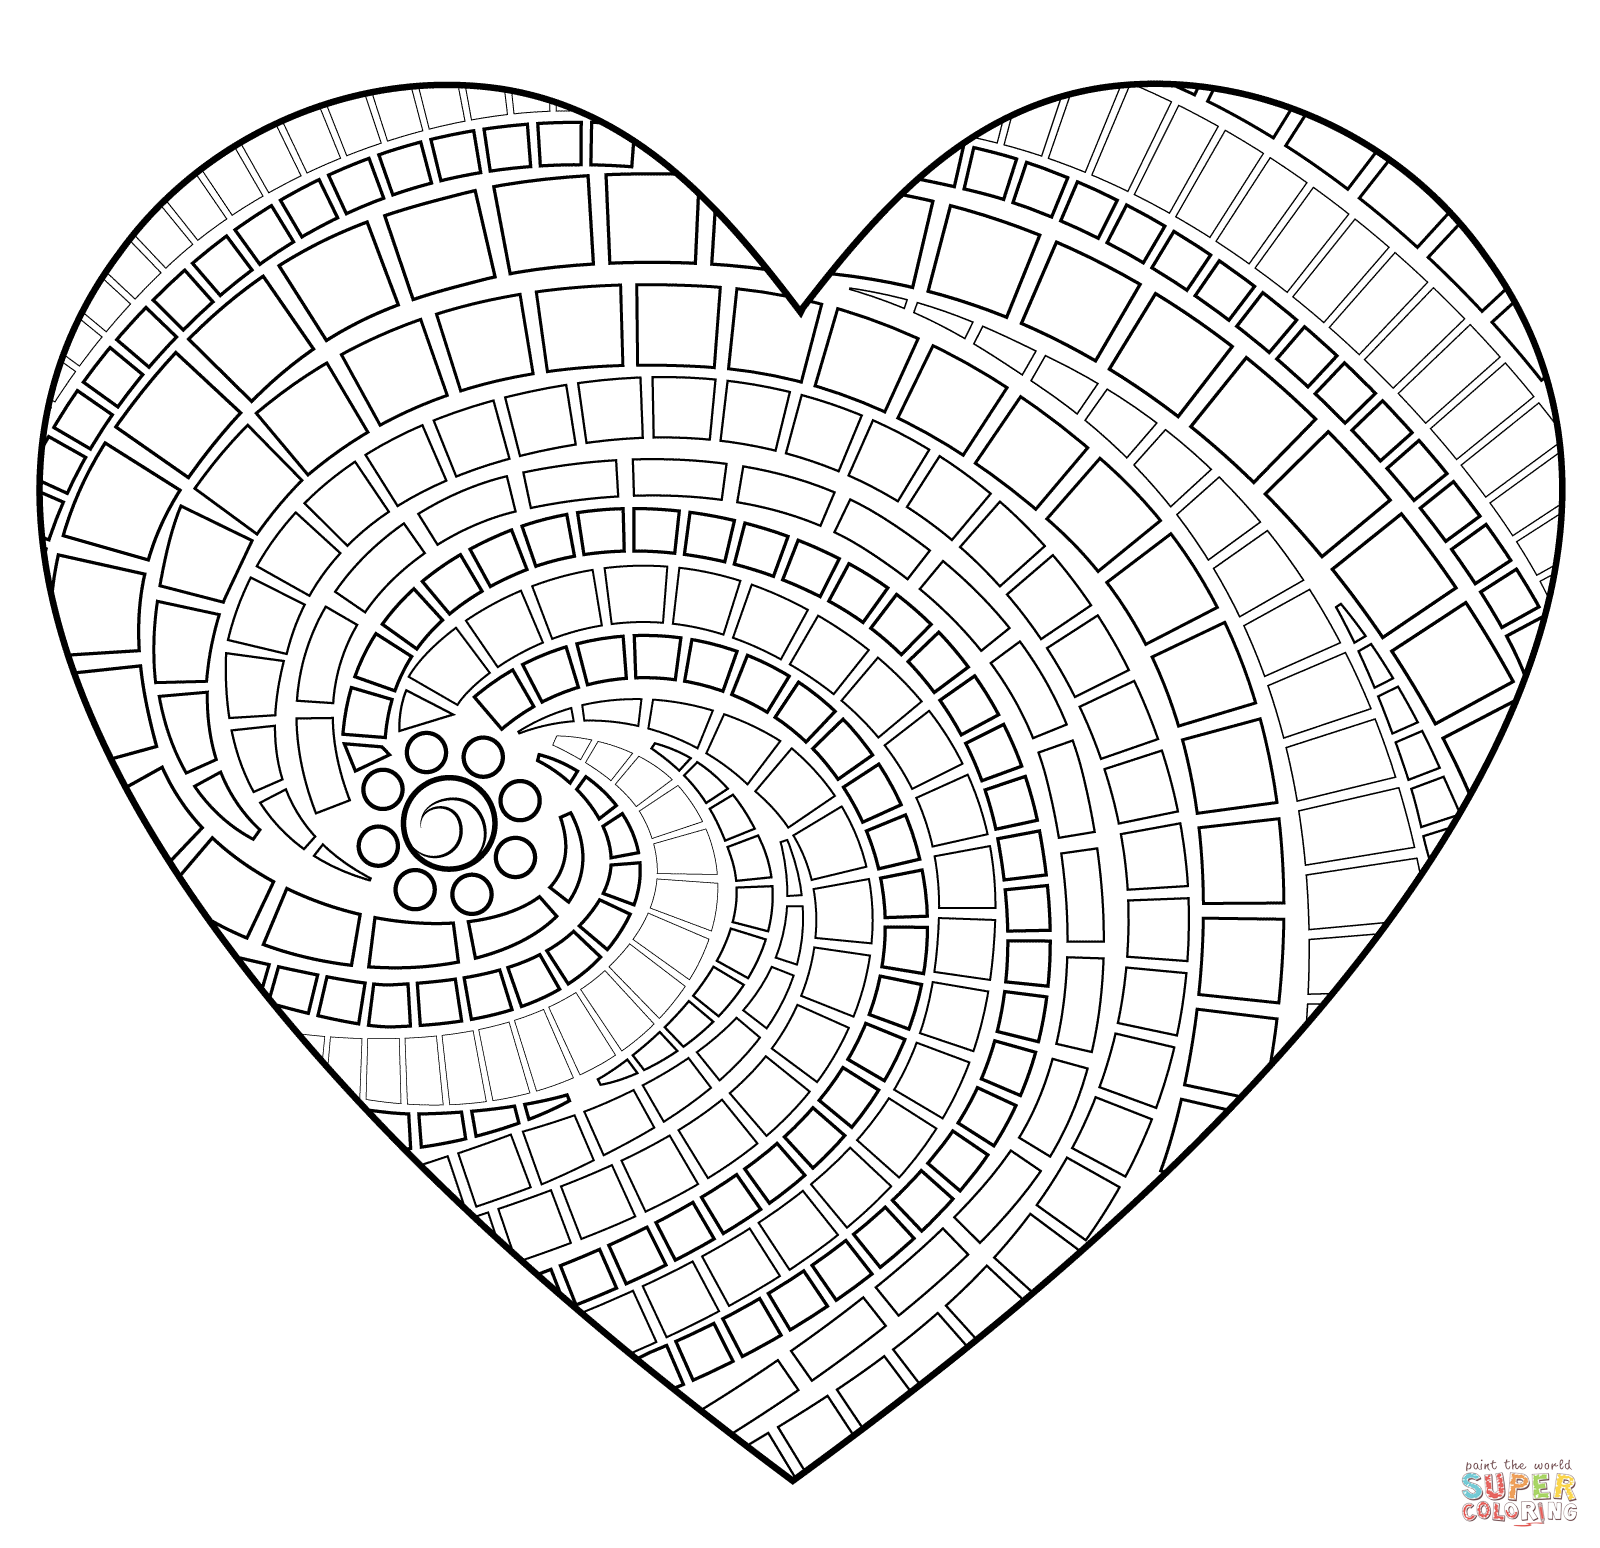 free mosaic patterns to print click the heart mosaic coloring pages to view printable version